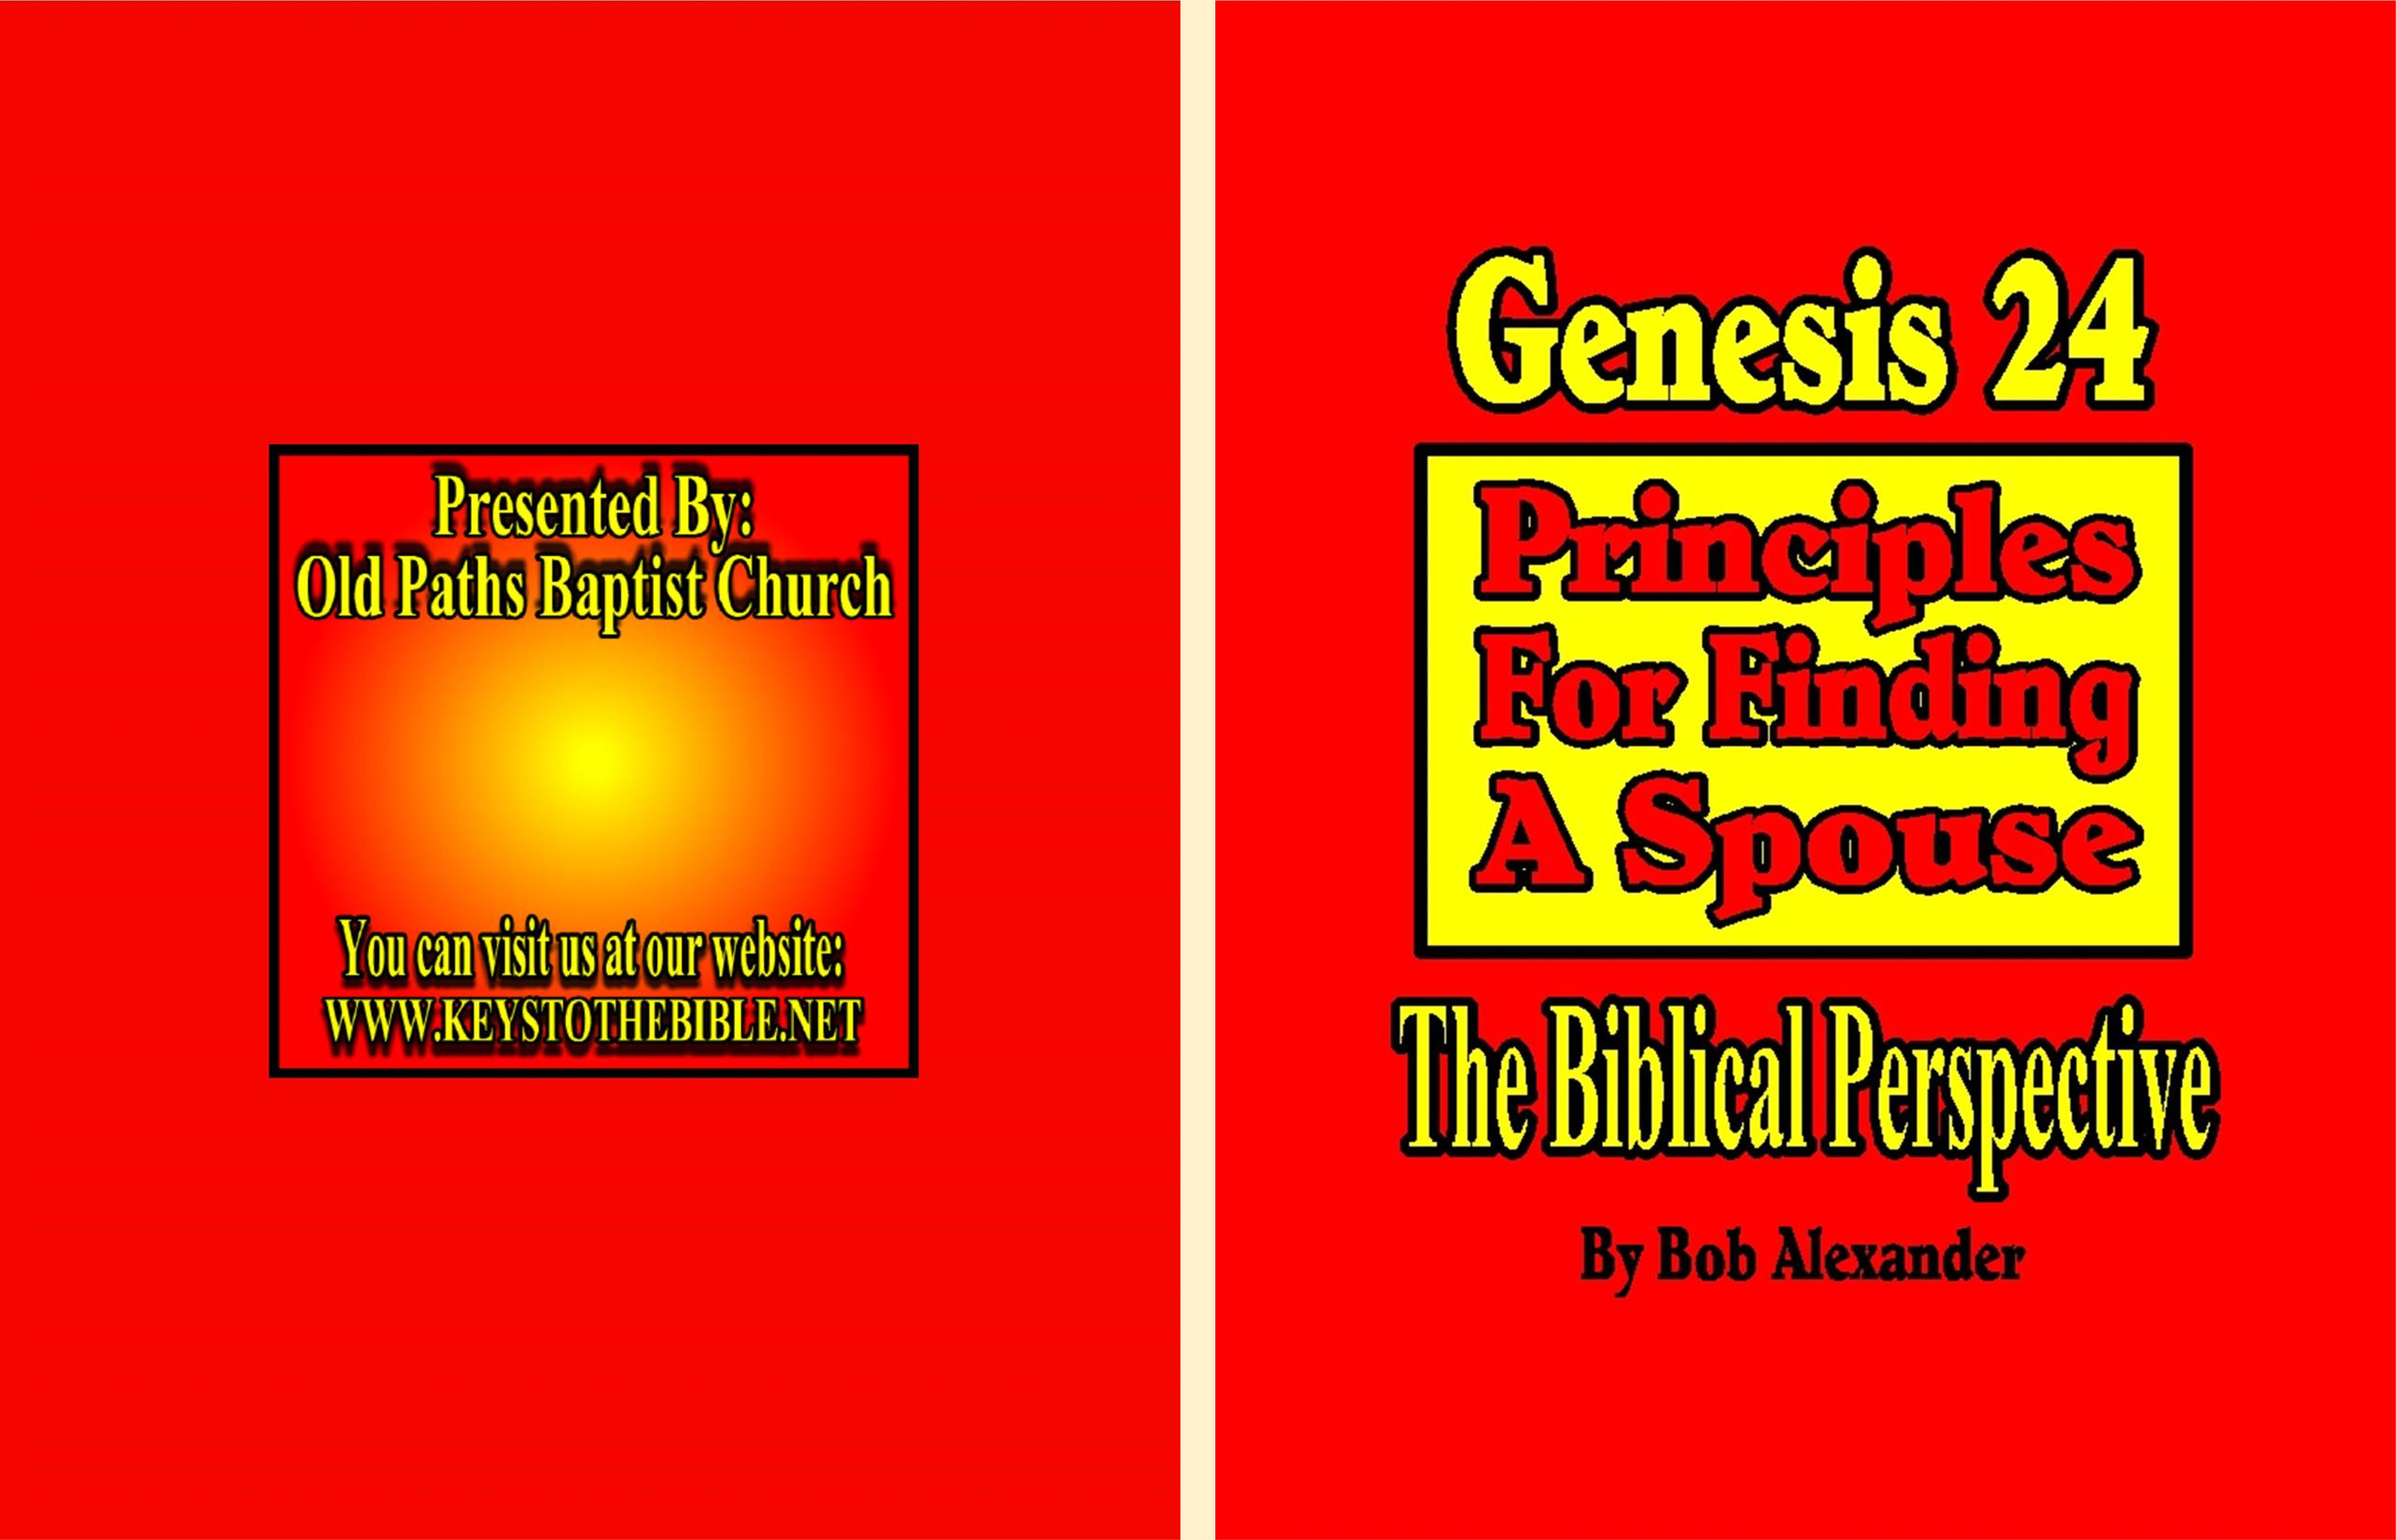 Genesis 24 (The Model for Finding a Spouse) cover image